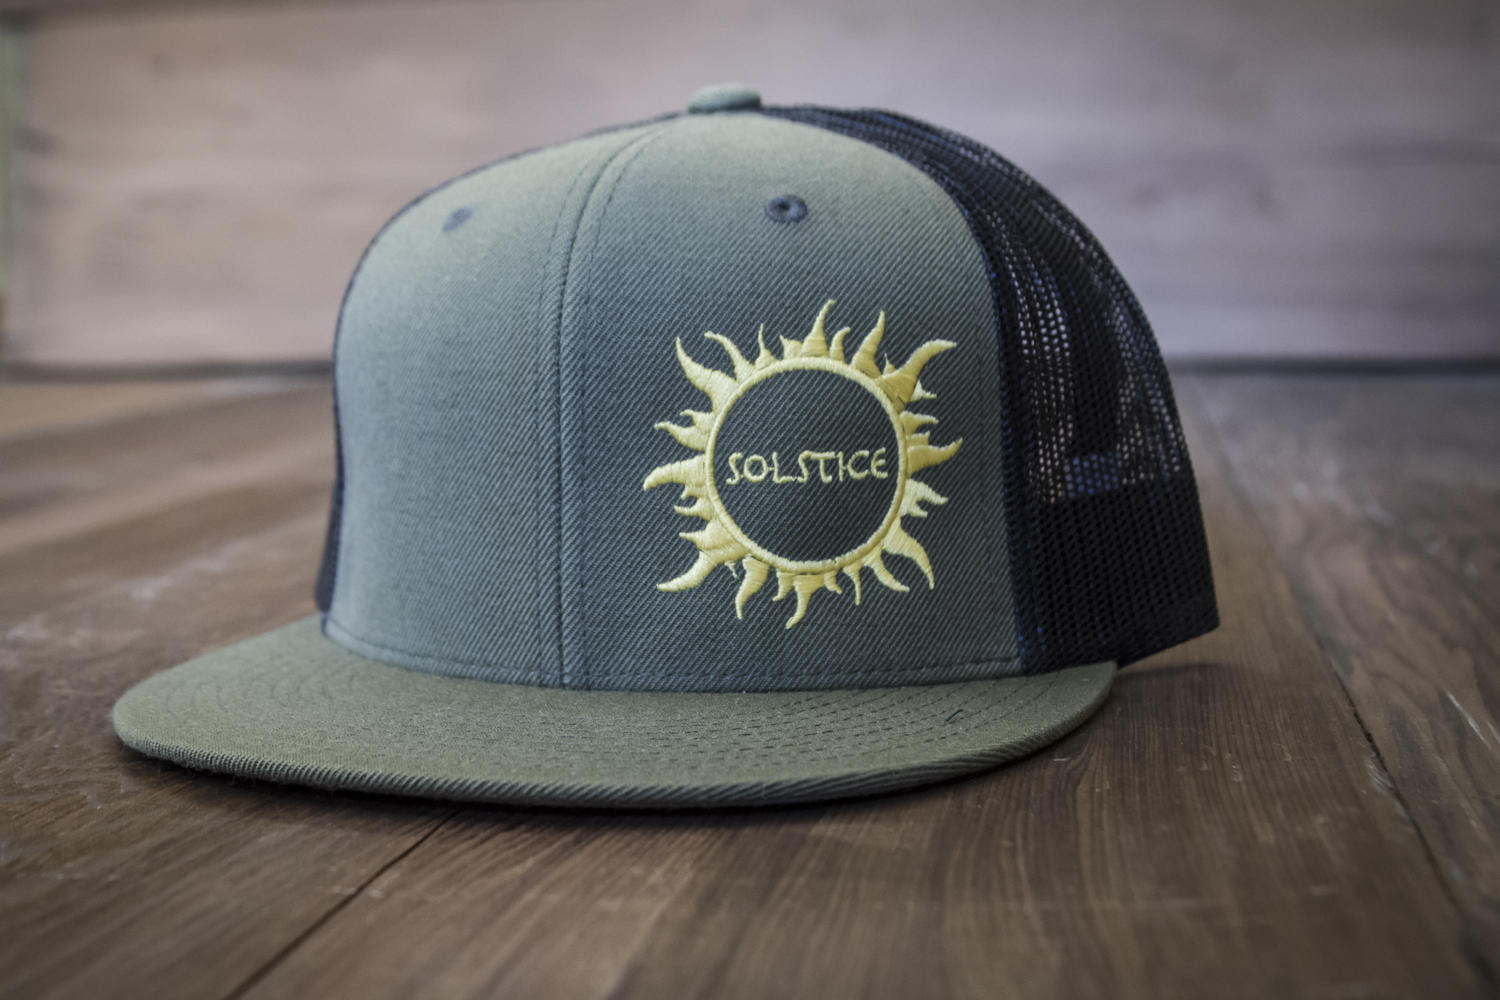 Solstice Snap-Back Flat-Bill Trucker Hat (Green)